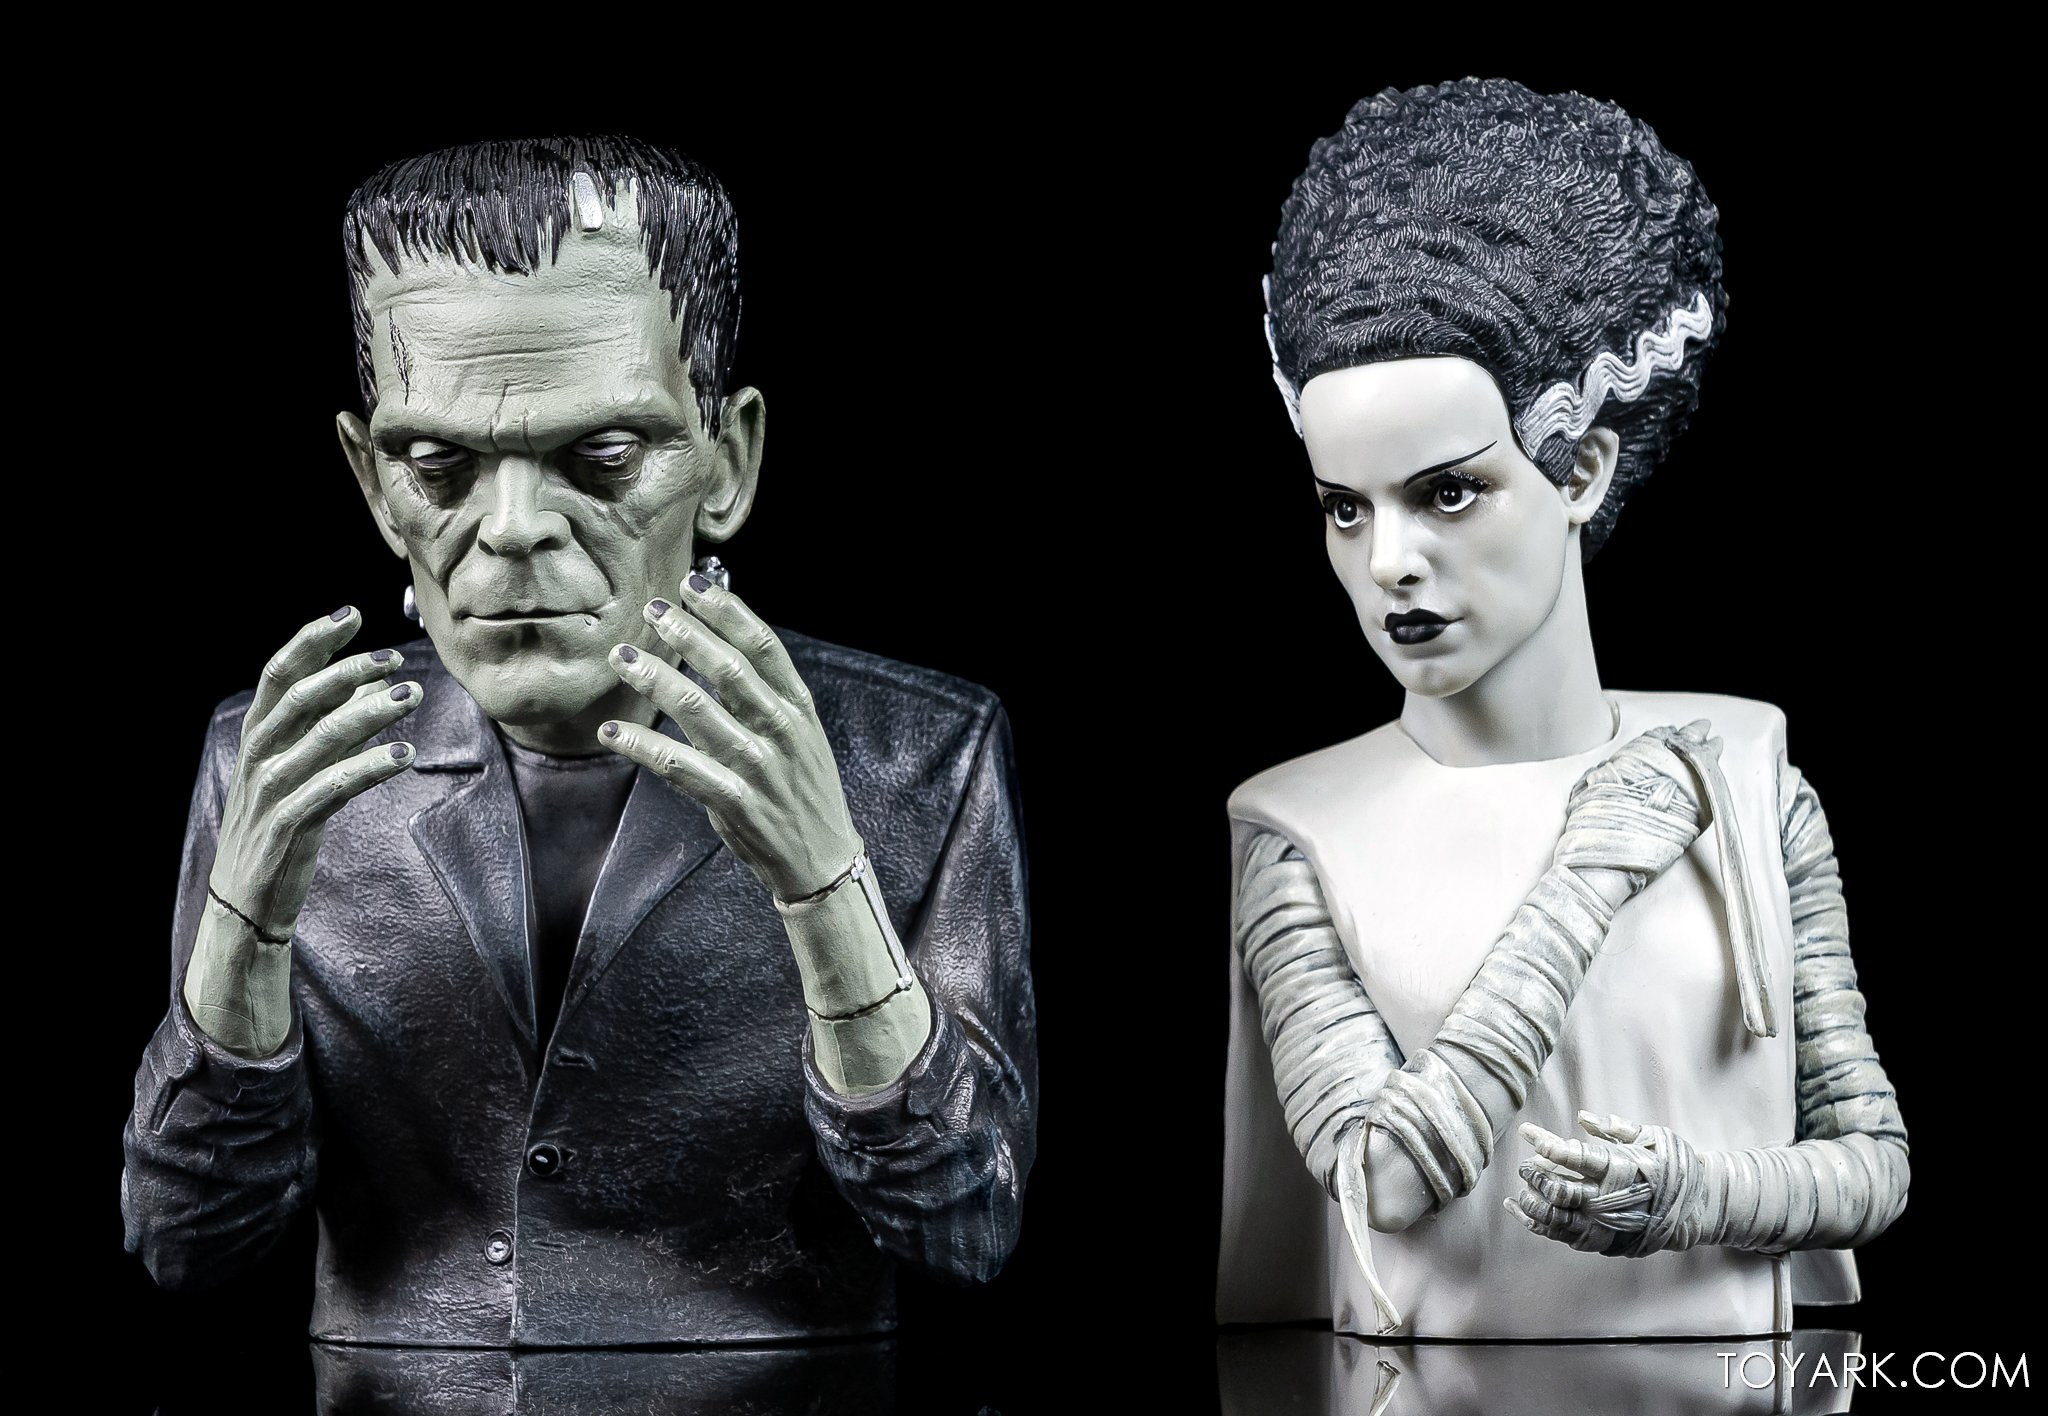 https://news.toyark.com/wp-content/uploads/sites/4/2020/10/Bride-of-Frankenstein-Spinature-010.jpg